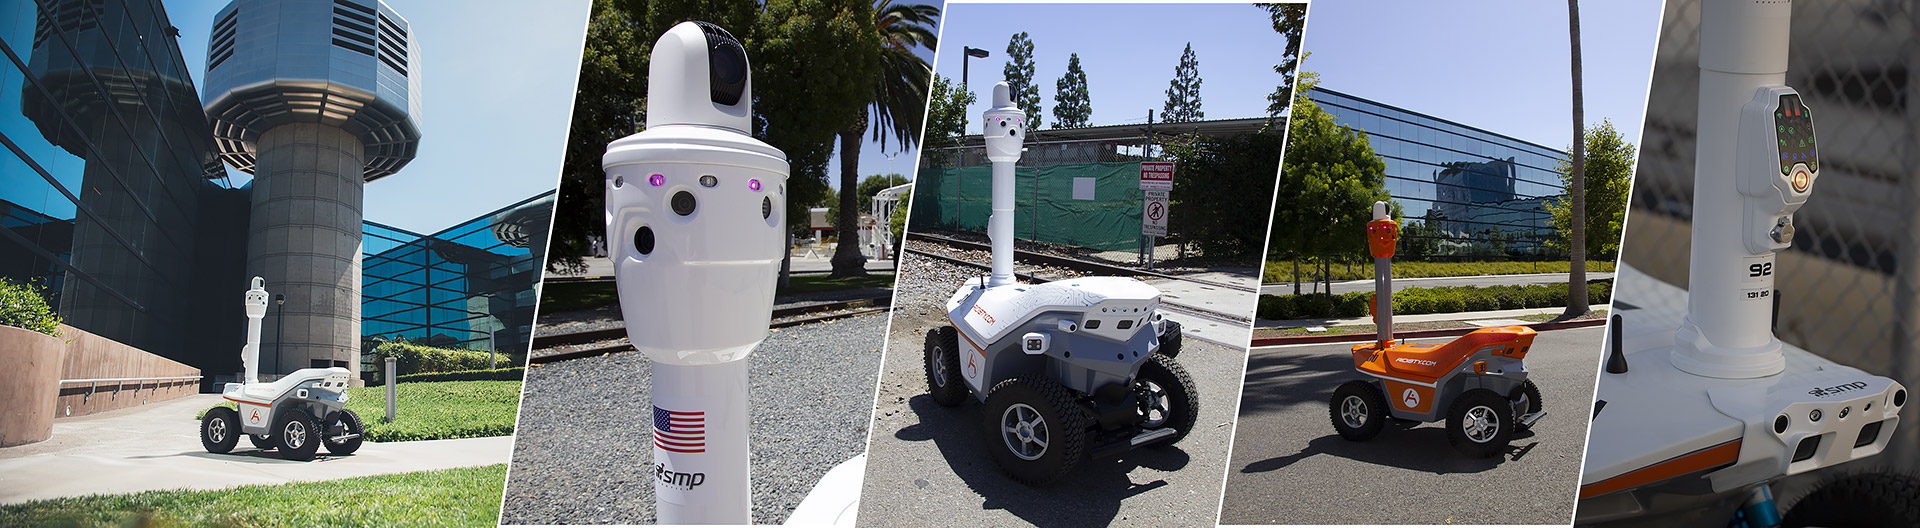 Security robot for industrial commercial facilities